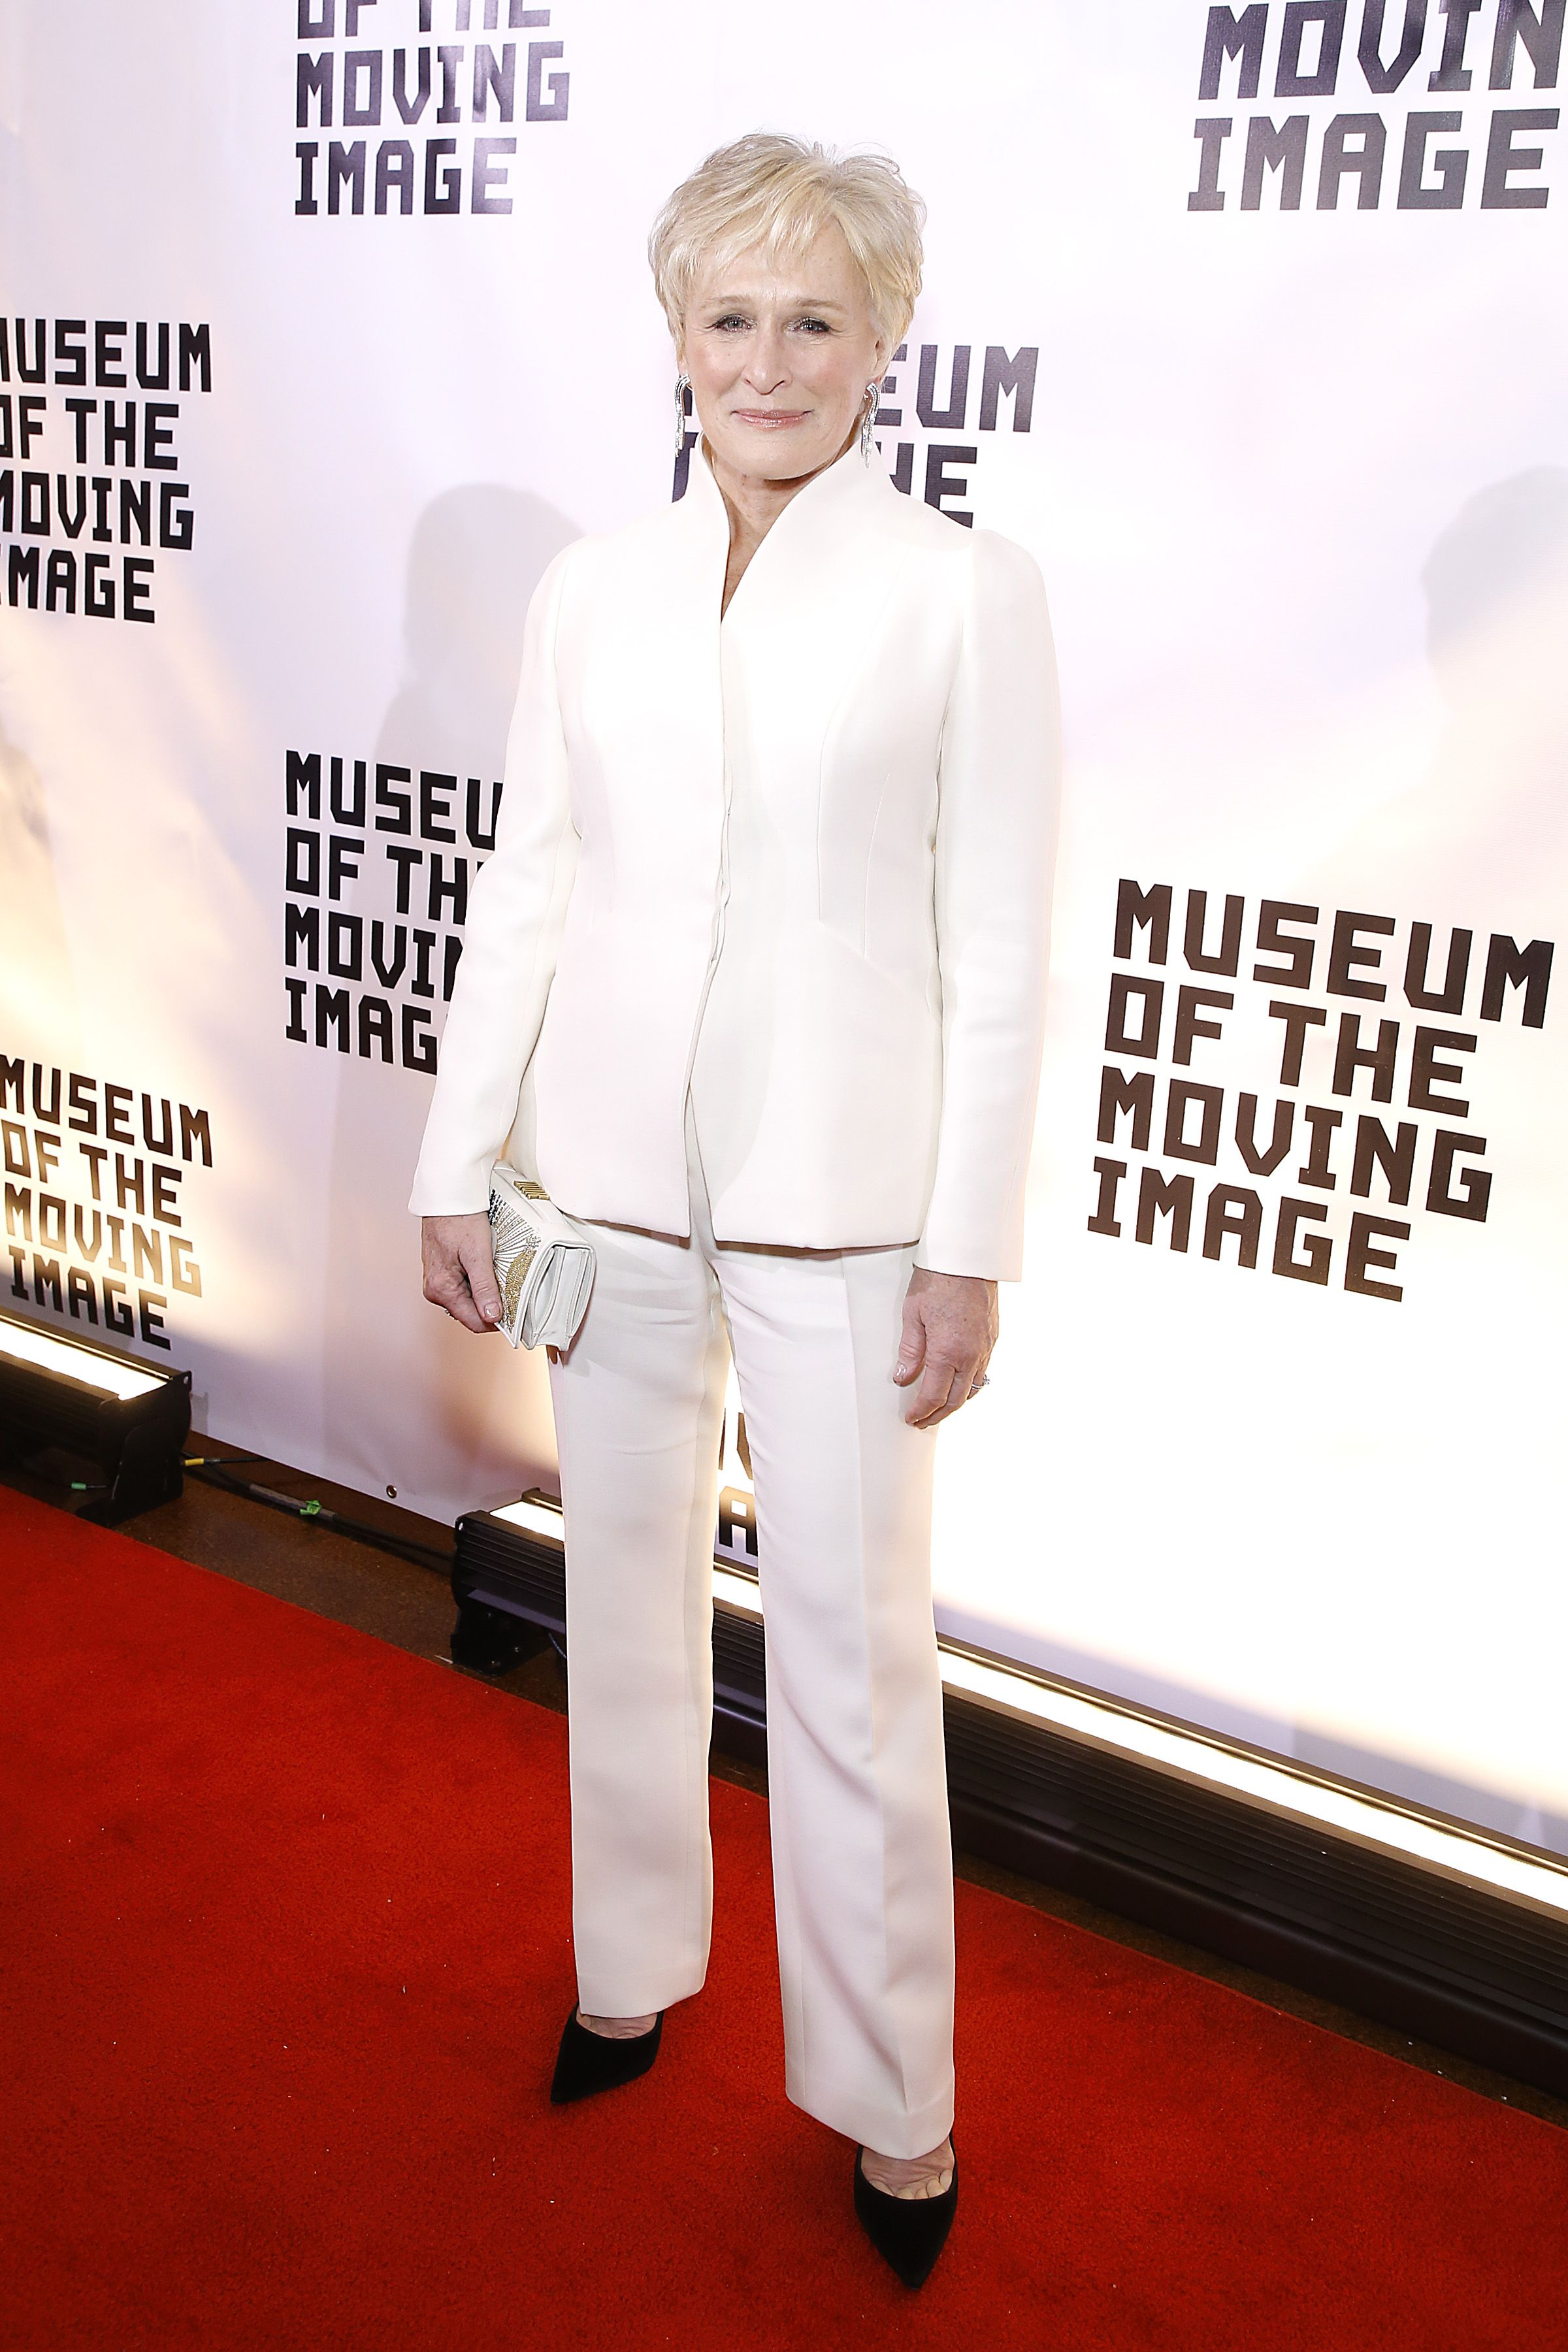 Close chose an elegant white suit for an event in her honor by the Museum of the Moving Image in New York City. She paired the look with diamond statement earrings and black pumps.